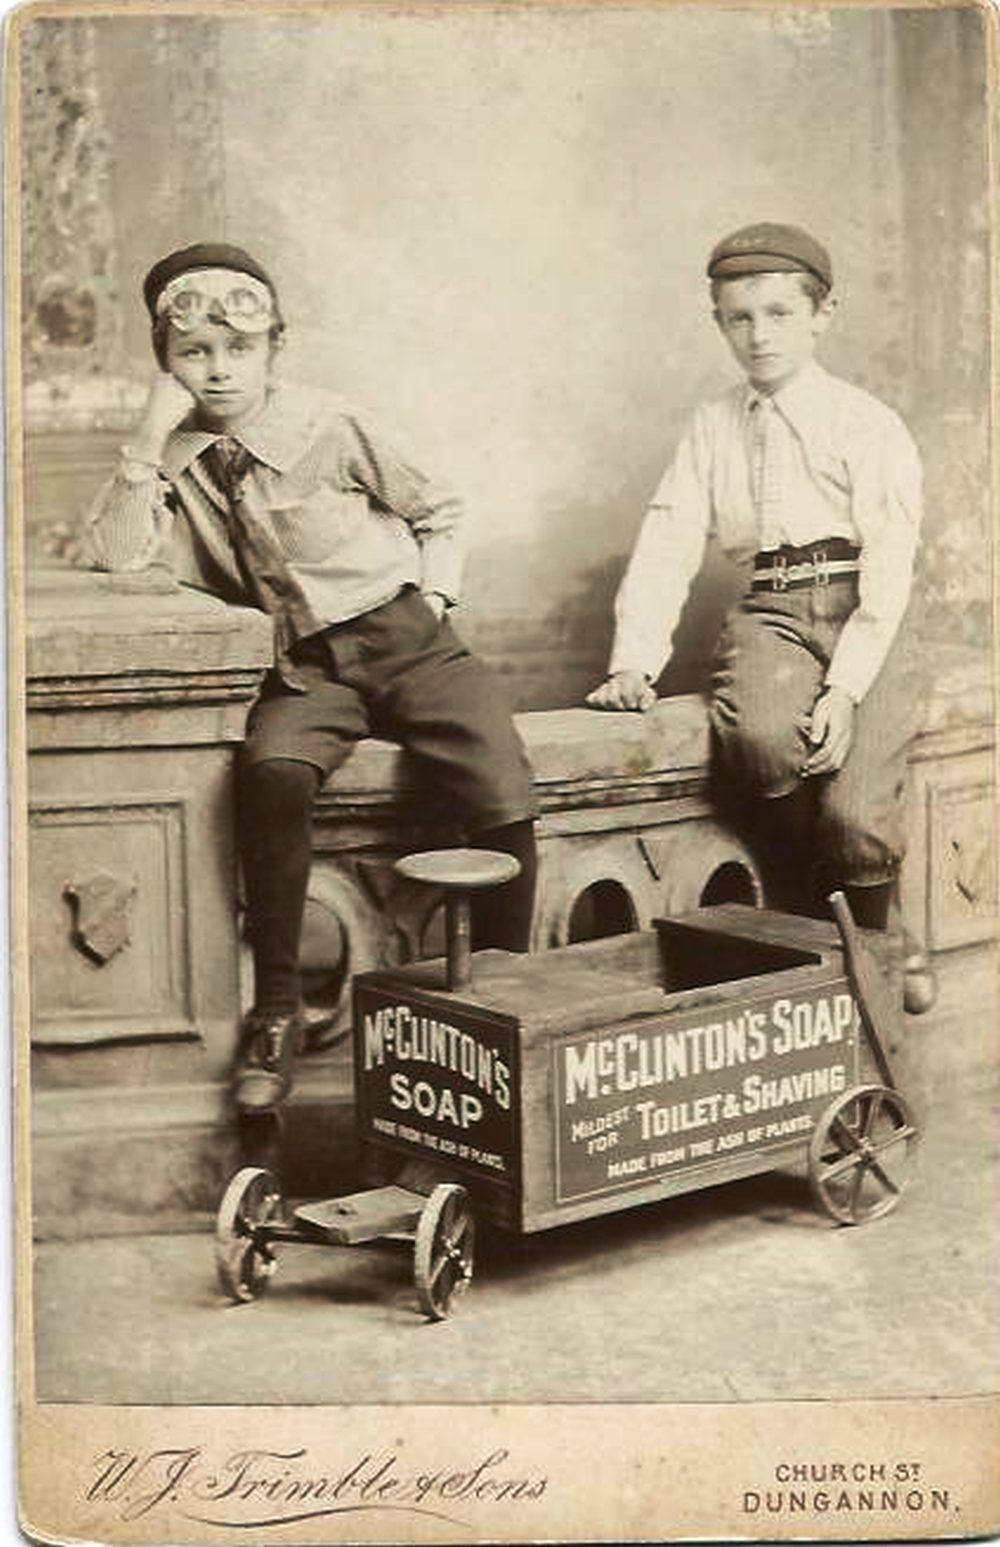 Lawrence and Robert Wilson, sons of the late Revd William Wilson, and nephews of David Brown, who featured in advertising cards for McClinton's soaps, arising from the display at the International Exhibition in 1907, courtesy of Donaghmore Historical Society.